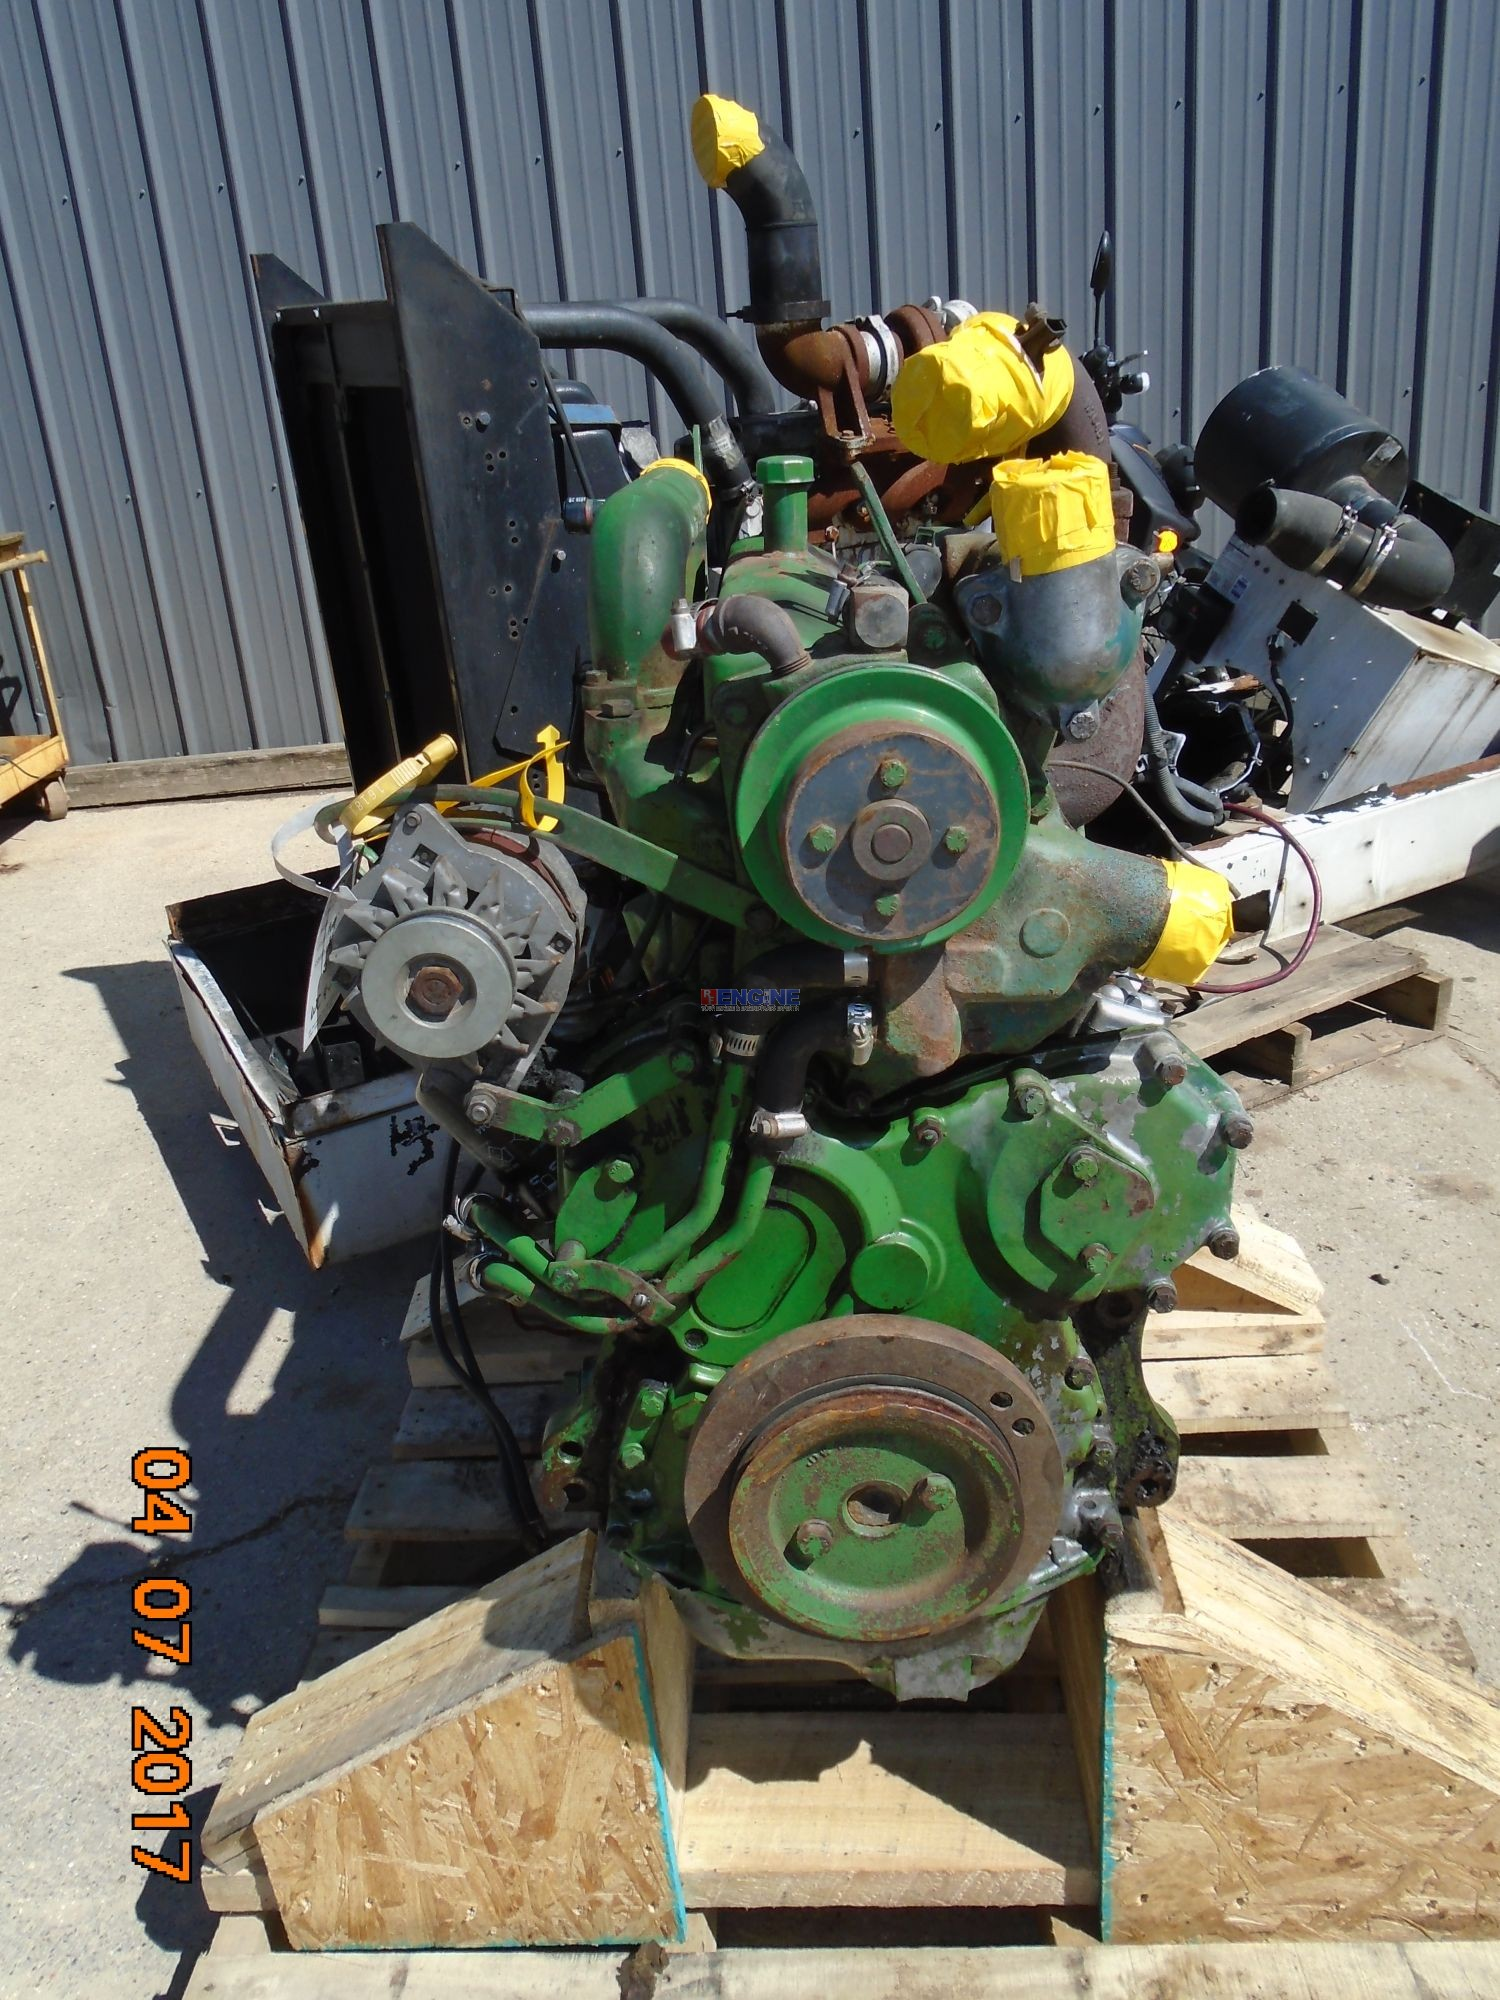 R. F. Engine John Deere 329 Engine Complete Used Running 1618160YW MDN: 6329DH03 BCN: R55012